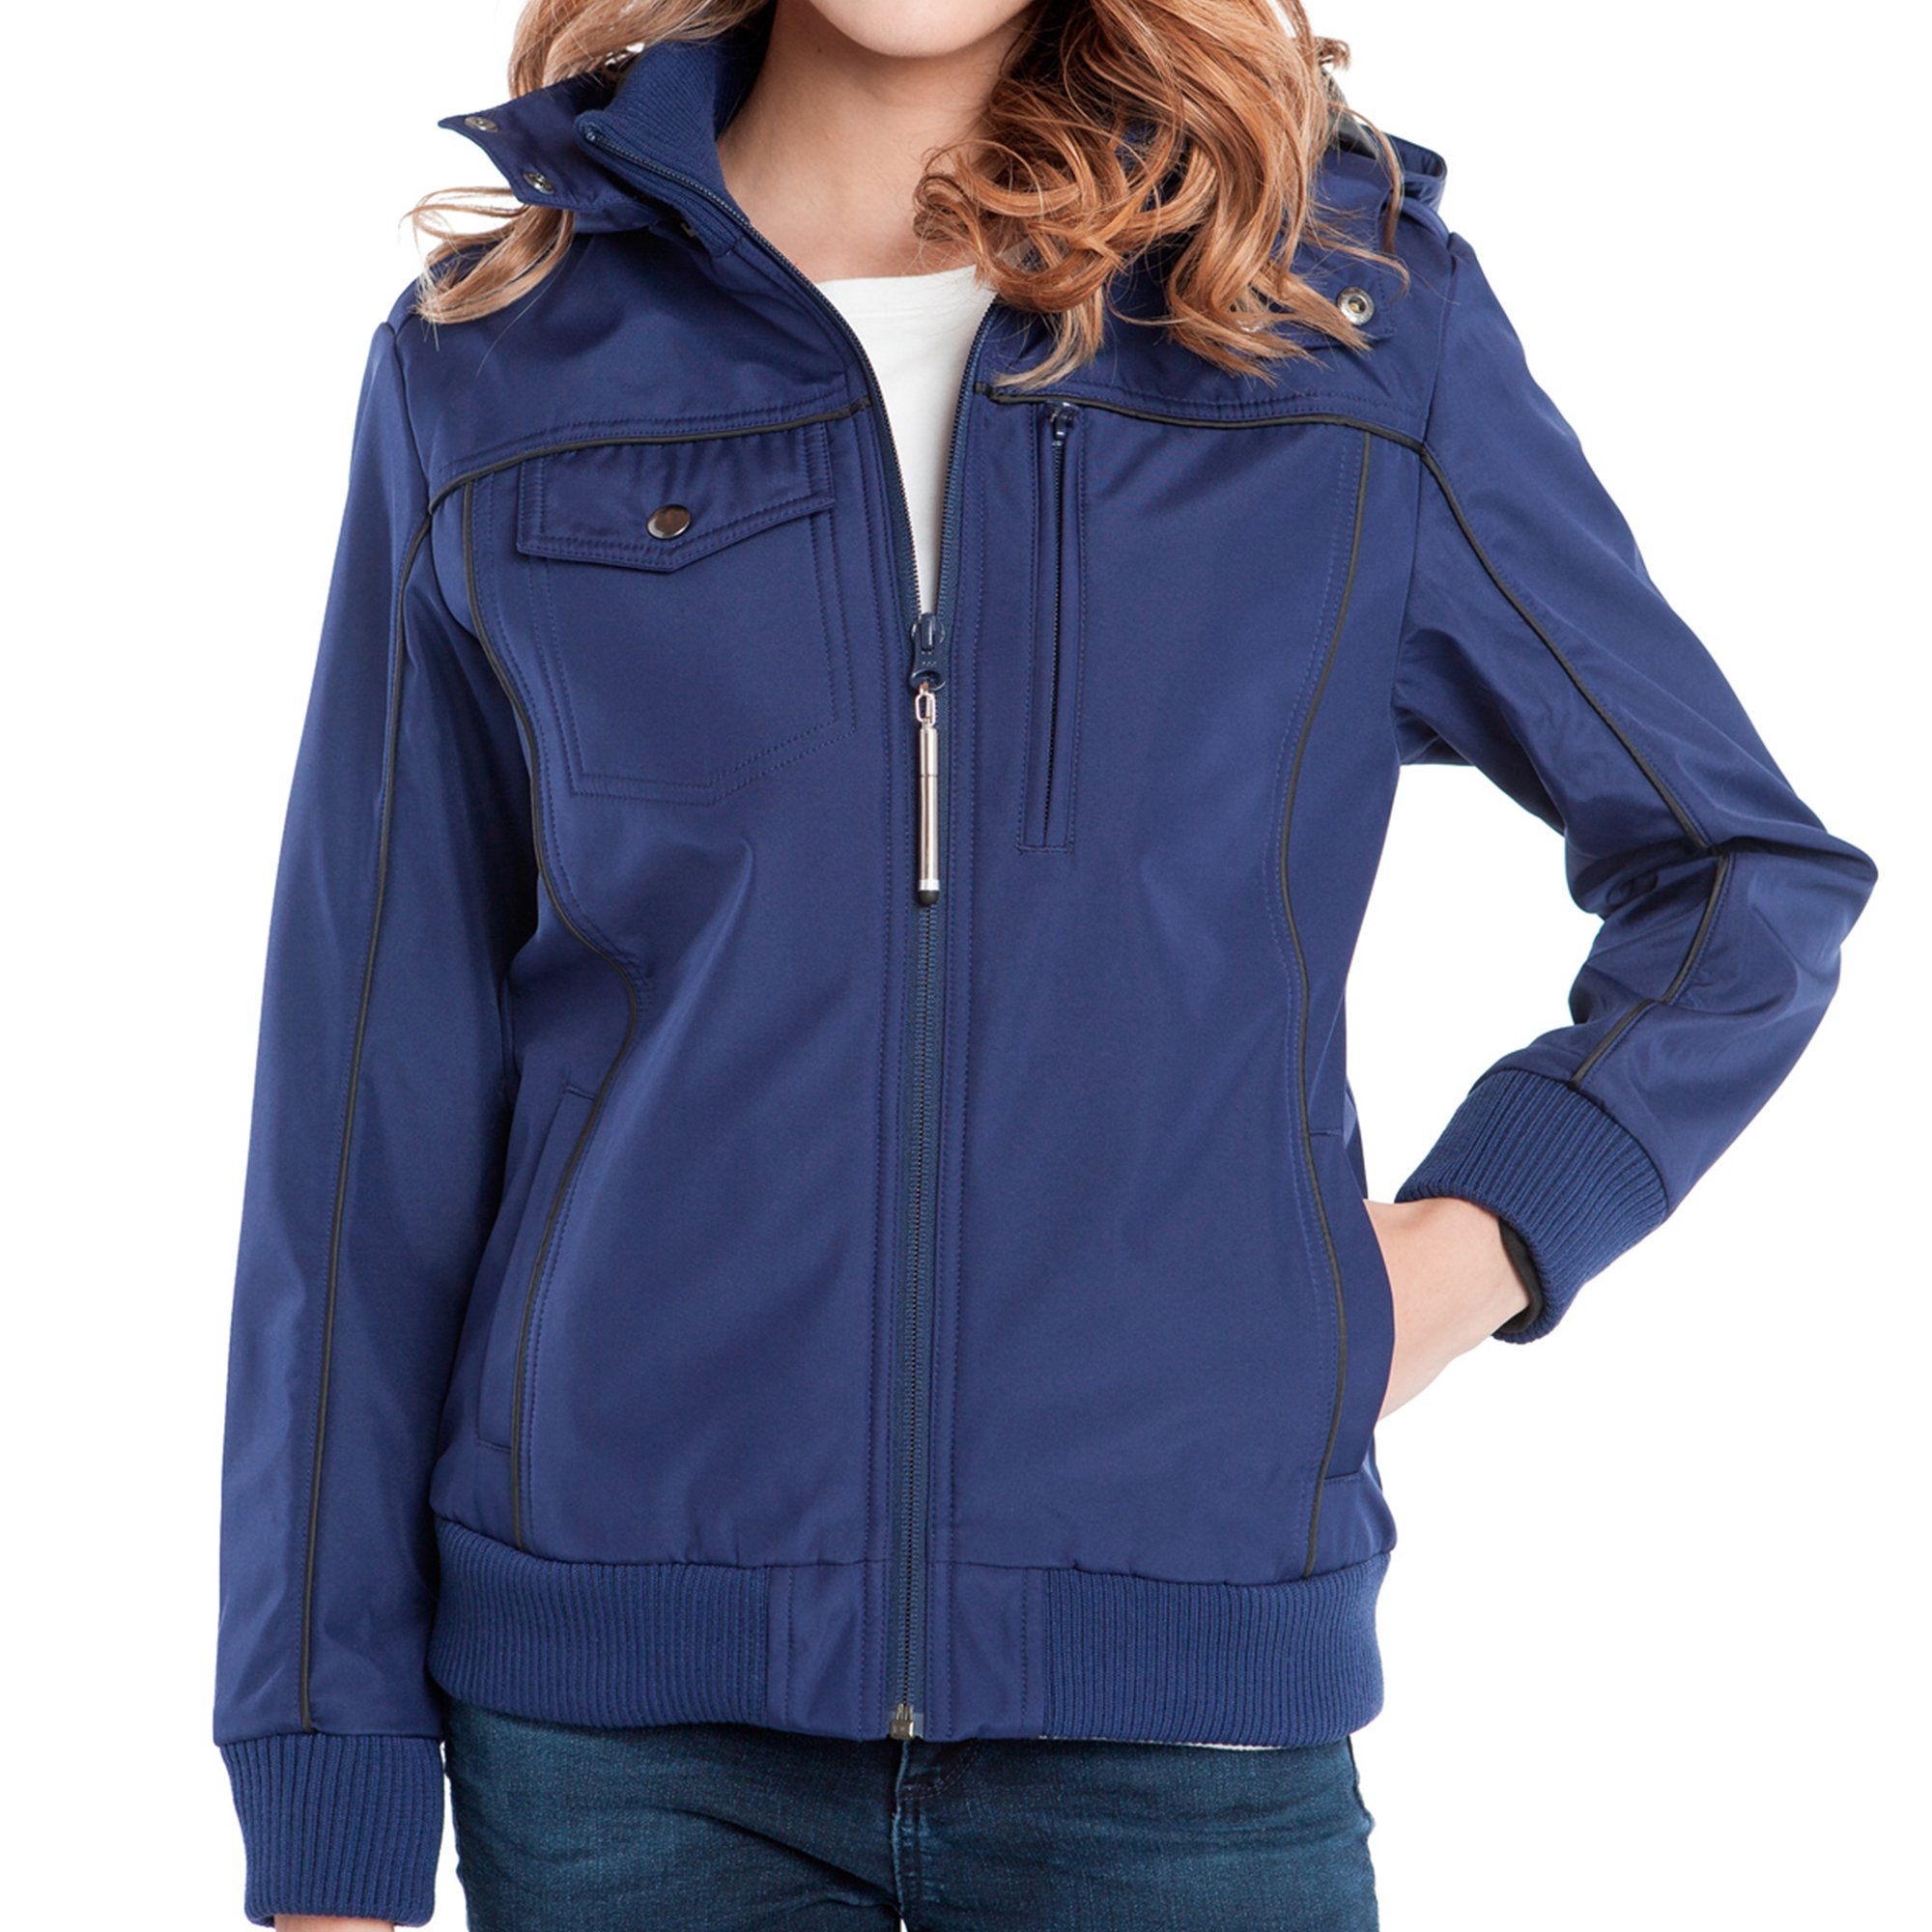 Baubax Travel Jacket - Bomber - Female - Blue - Small